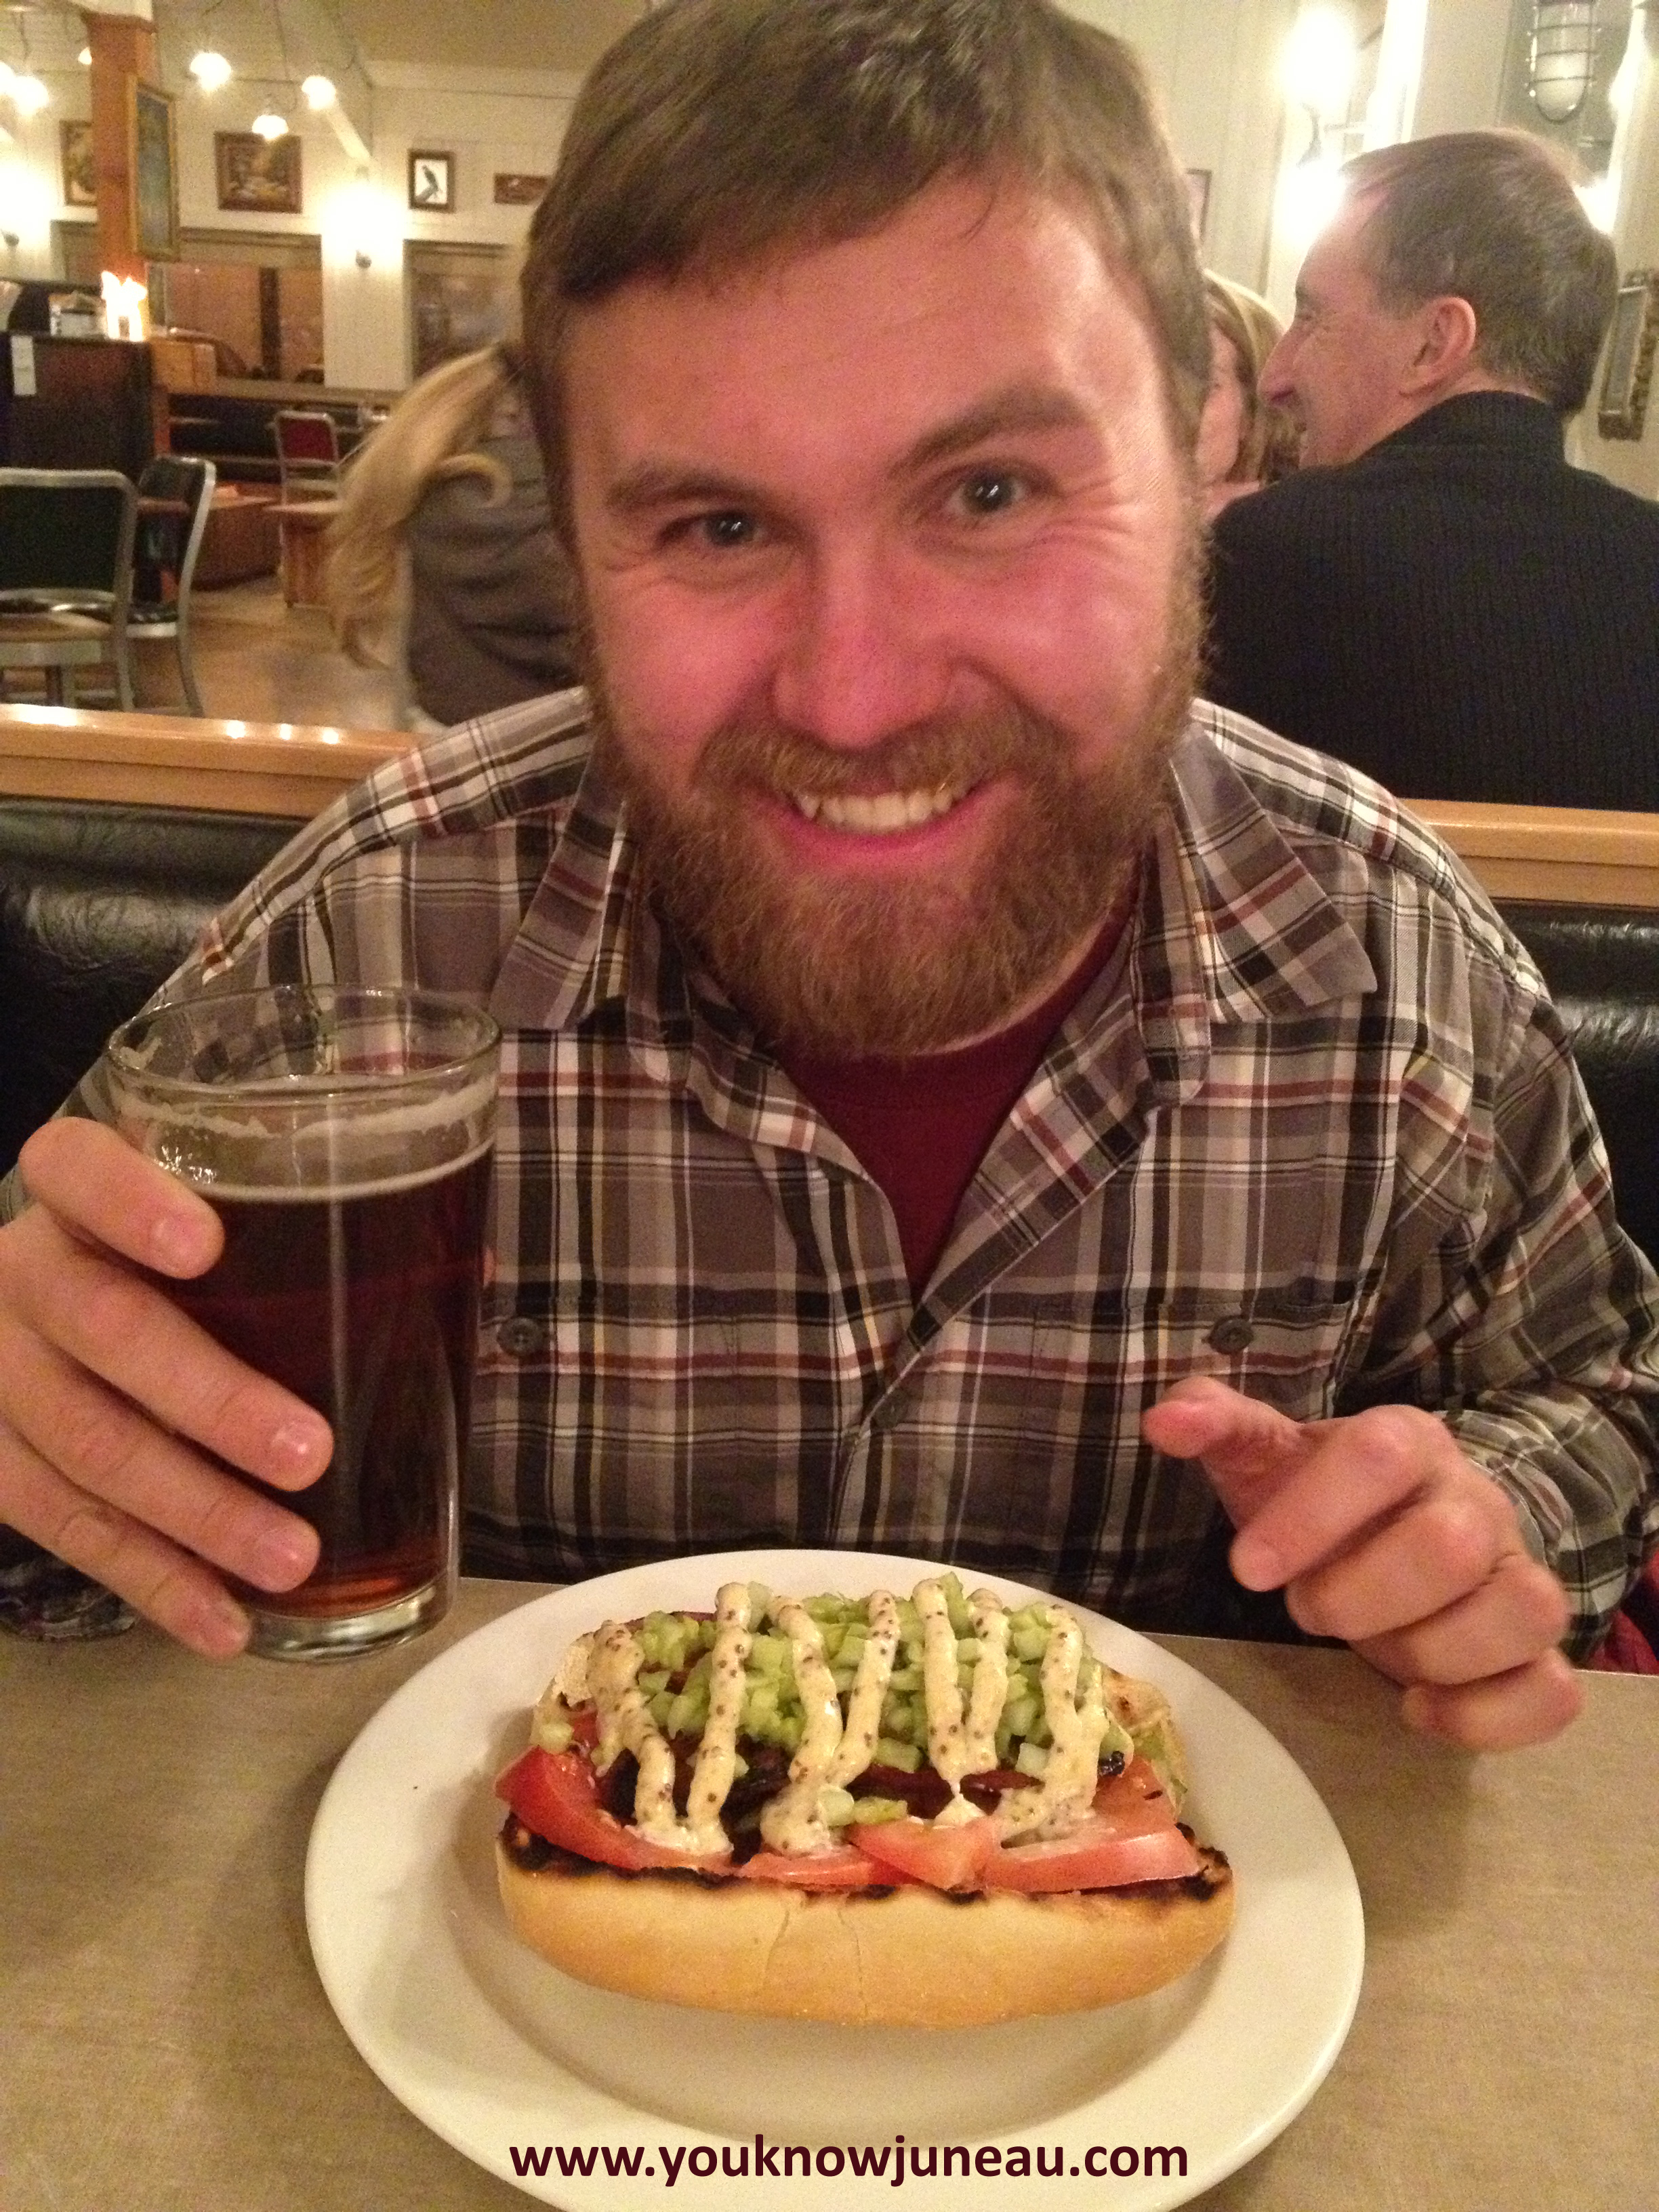 """My friend, Ben, demonstrates his excitement for the deal of the decade: the Spenard Roadhouse's """"Polish and a Pint."""" (Note the beard and flannel, trademarks of a typical Alaskan man!)             Normal     0                     false     false     false         EN-US     X-NONE     X-NONE                                                                                                                                                                                                                                                                                                                                                                                                                                                                                                                                                                                                                                                                                                             /* Style Definitions */  table.MsoNormalTable {mso-style-name:""""Table Normal""""; mso-tstyle-rowband-size:0; mso-tstyle-colband-size:0; mso-style-noshow:yes; mso-style-priority:99; mso-style-parent:""""""""; mso-padding-alt:0in 5.4pt 0in 5.4pt; mso-para-margin-top:0in; mso-para-margin-right:0in; mso-para-margin-bottom:10.0pt; mso-para-margin-left:0in; line-height:115%; mso-pagination:widow-orphan; font-size:11.0pt; font-family:""""Calibri"""",""""sans-serif""""; mso-ascii-font-family:Calibri; mso-ascii-theme-font:minor-latin; mso-hansi-font-family:Calibri; mso-hansi-theme-font:minor-latin;}"""